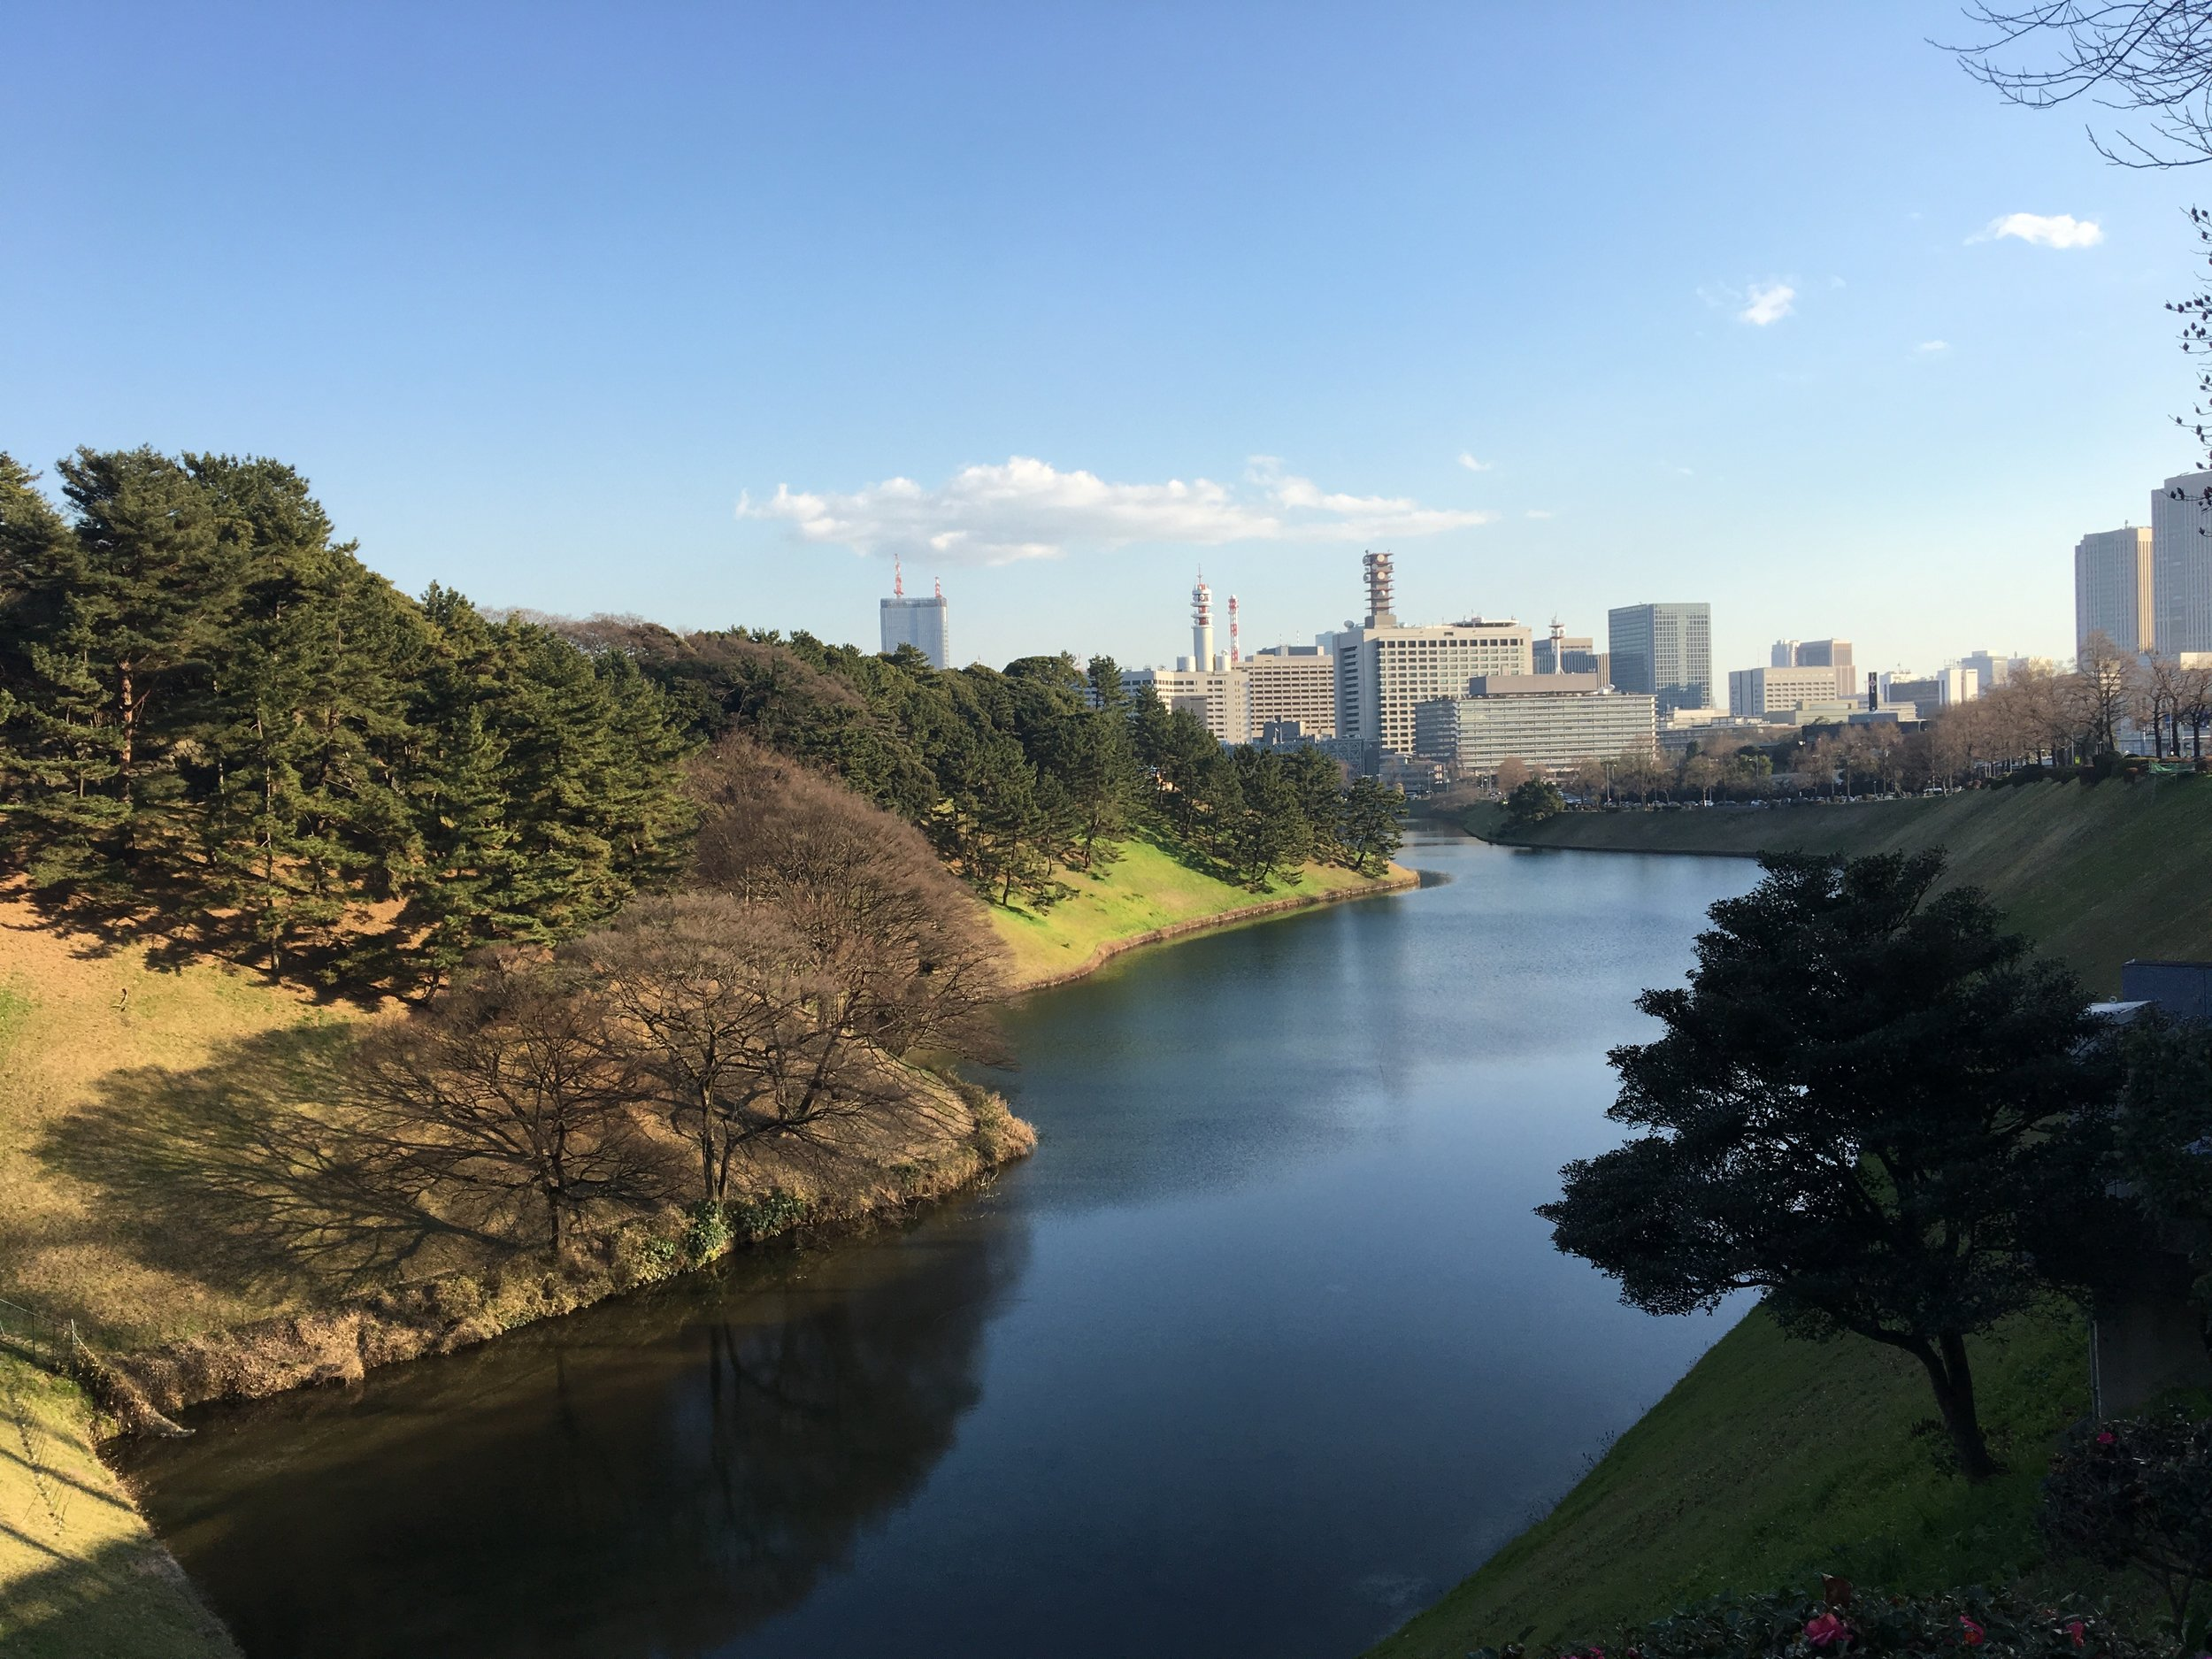 Moat surrounding the Imperial Palace in Central Tokyo